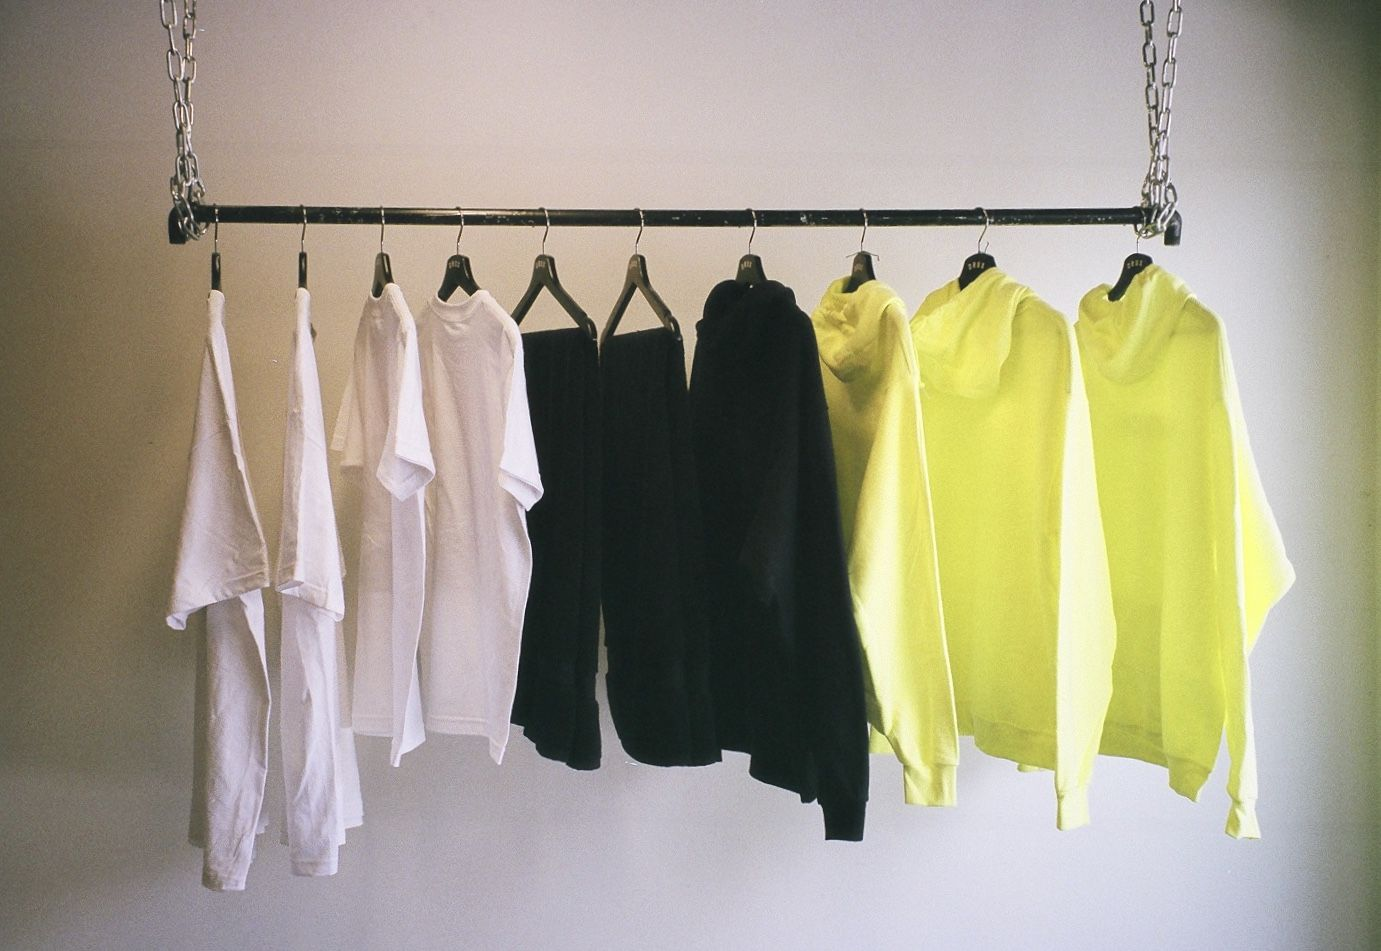 Streetwear Store Drux Usa Chain Rack Hanging From